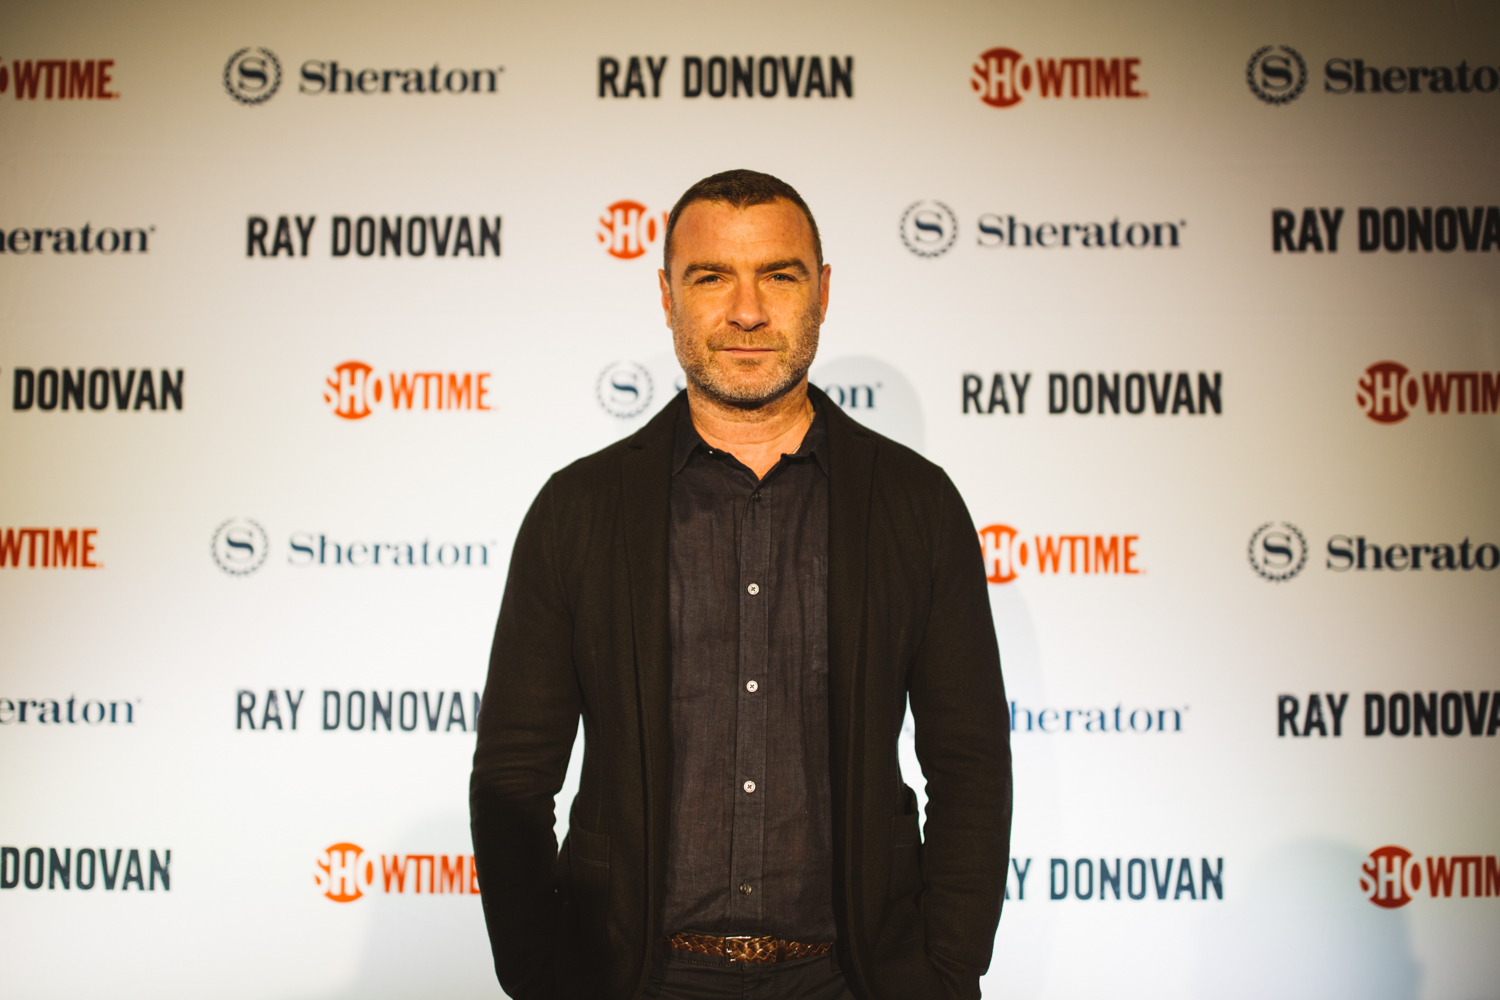 In collaboration with the Sheraton Hotel and SHOWTIME, Liev Schreiber came to Seattle tonight, October 6, 2018,{ } to host a private screening of the Season 6 premiere of the SHOWTIME drama series Ray Donovan. (Image: Ryan McBoyle / Seattle Refined).